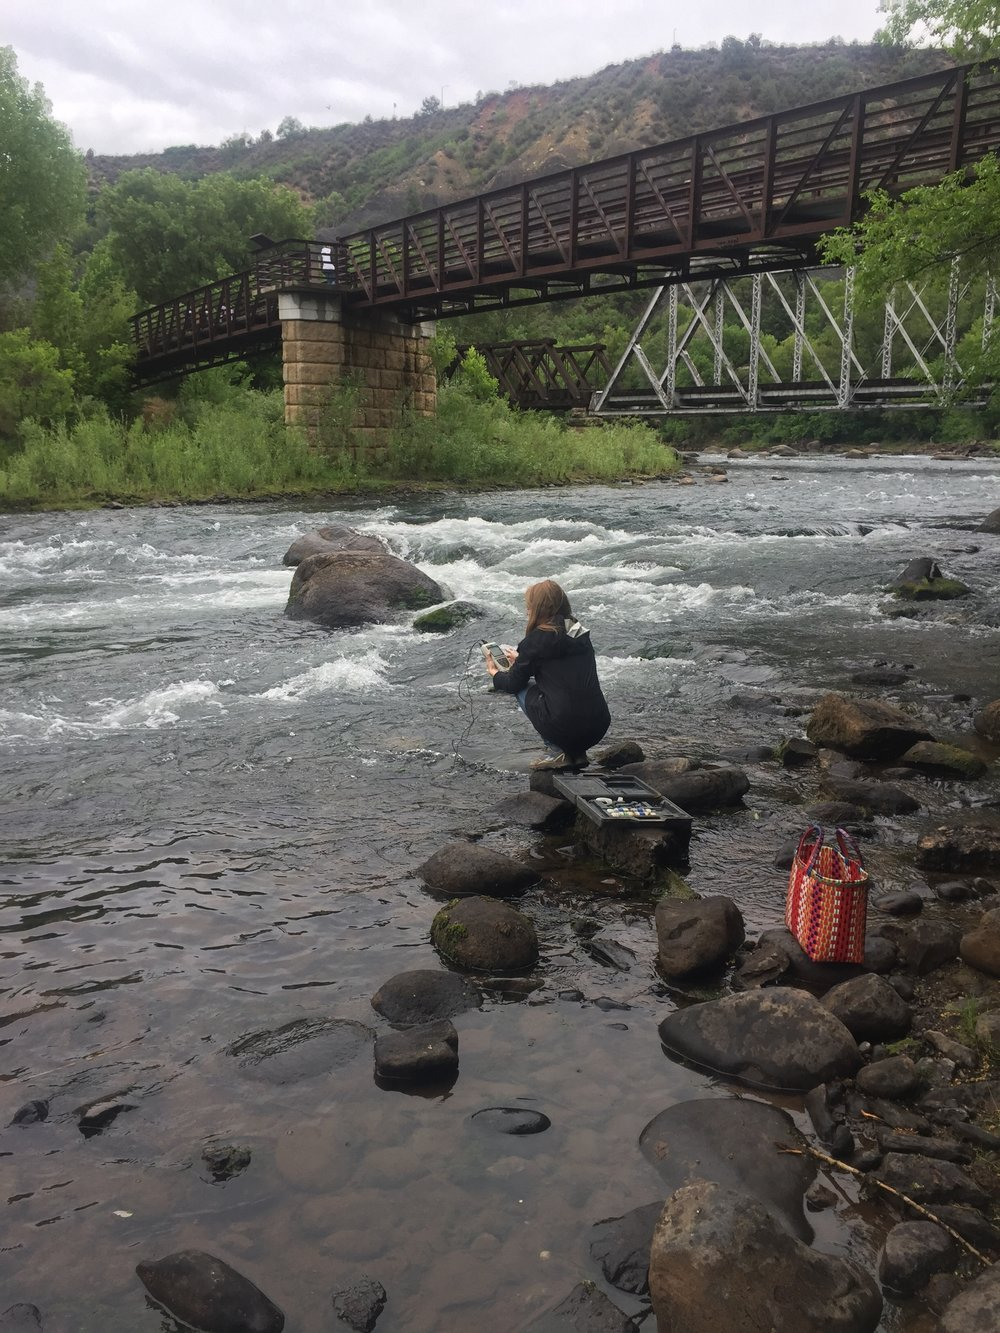 During weekend rains, Page Buono collected water samples along the Animas River on June 16th.